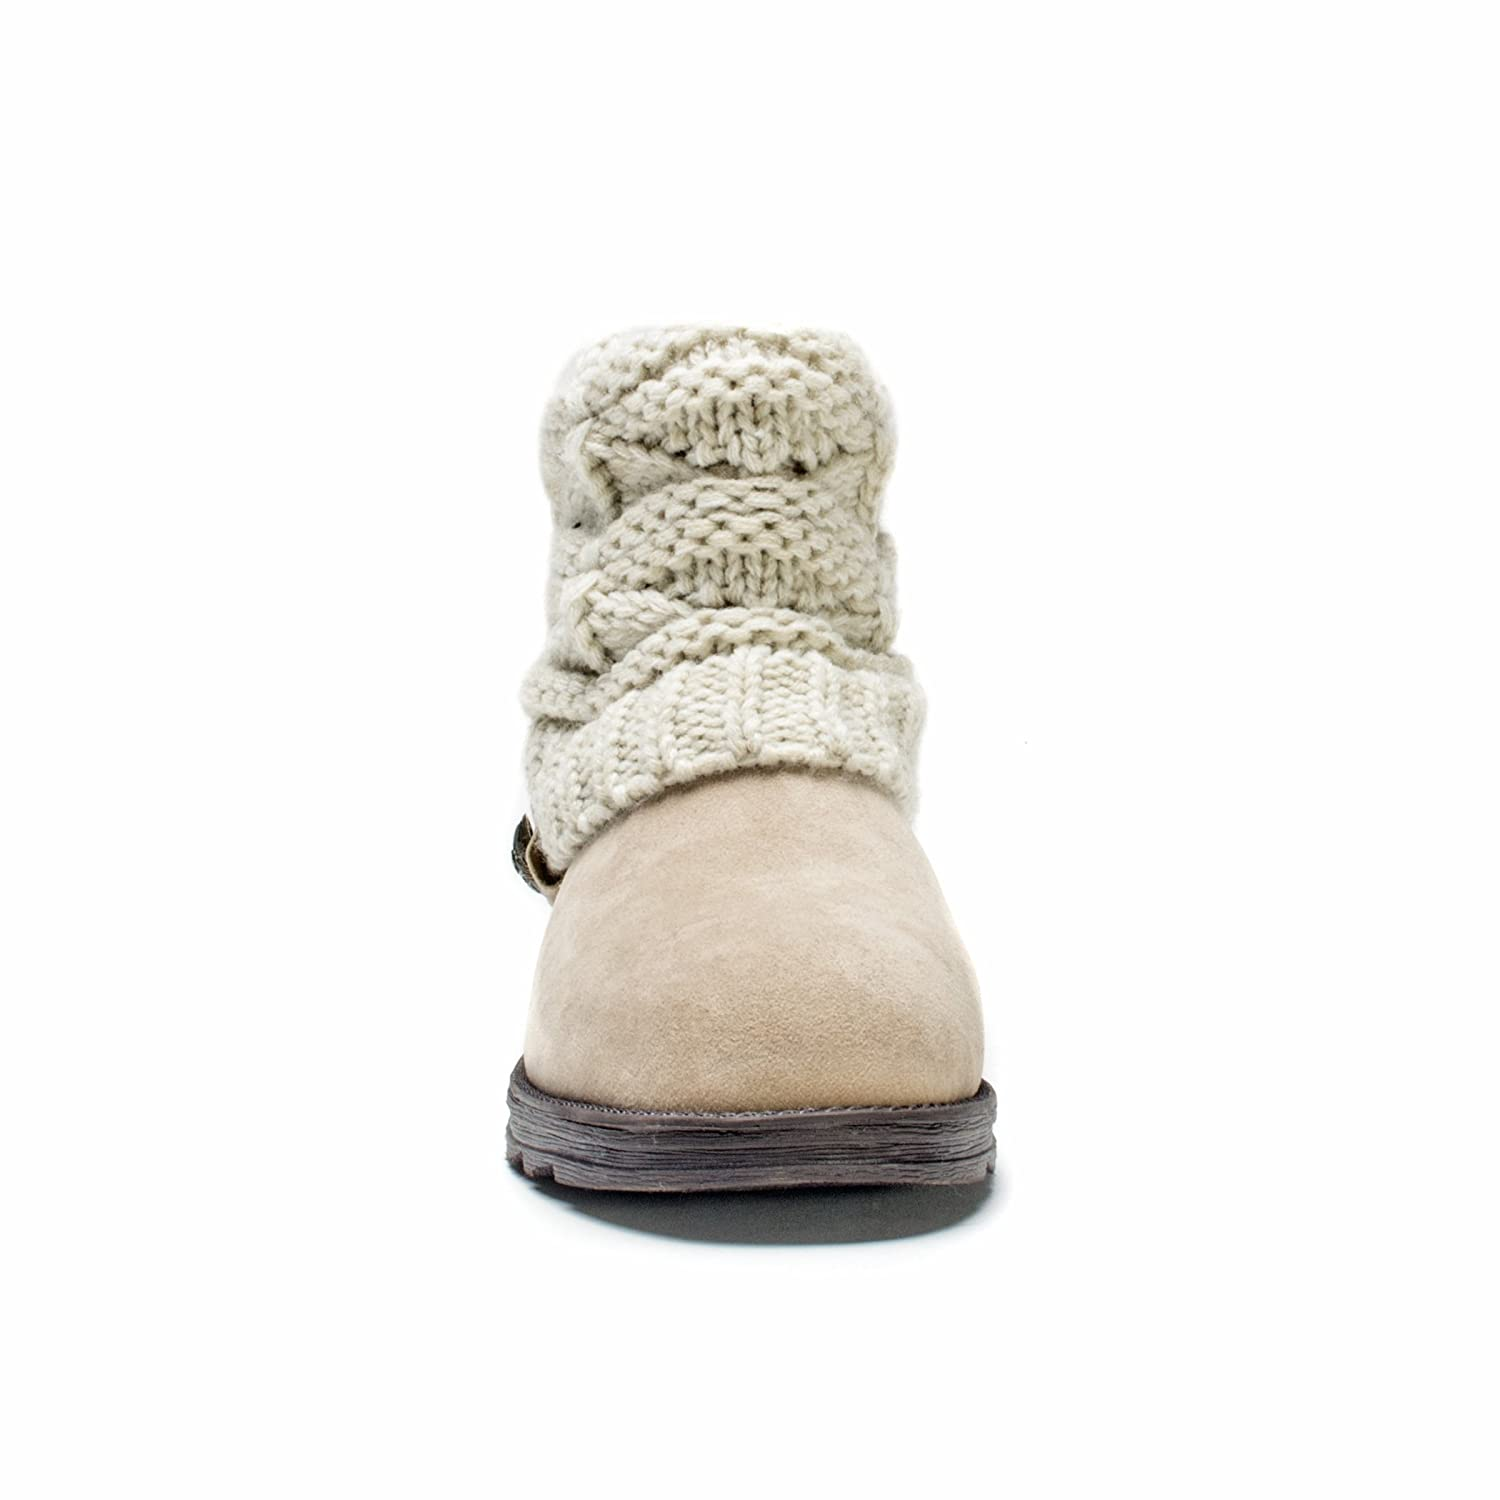 MUK LUKS Women's Patti Crochette Winter Boot B00VM0SQGC 10 W US|Beige